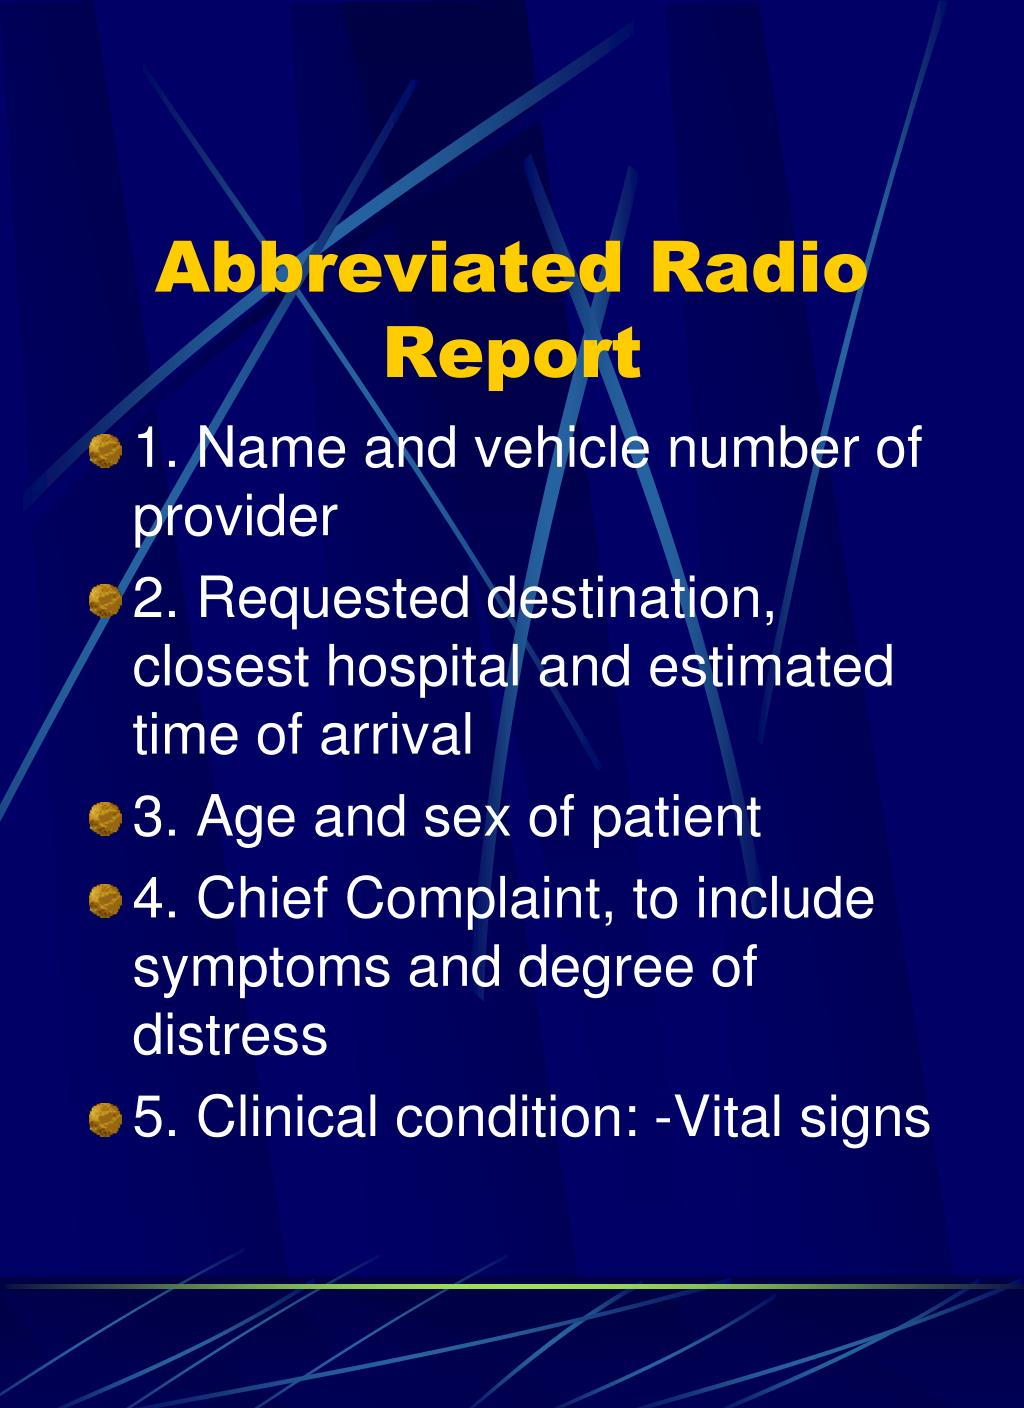 Abbreviated Radio Report